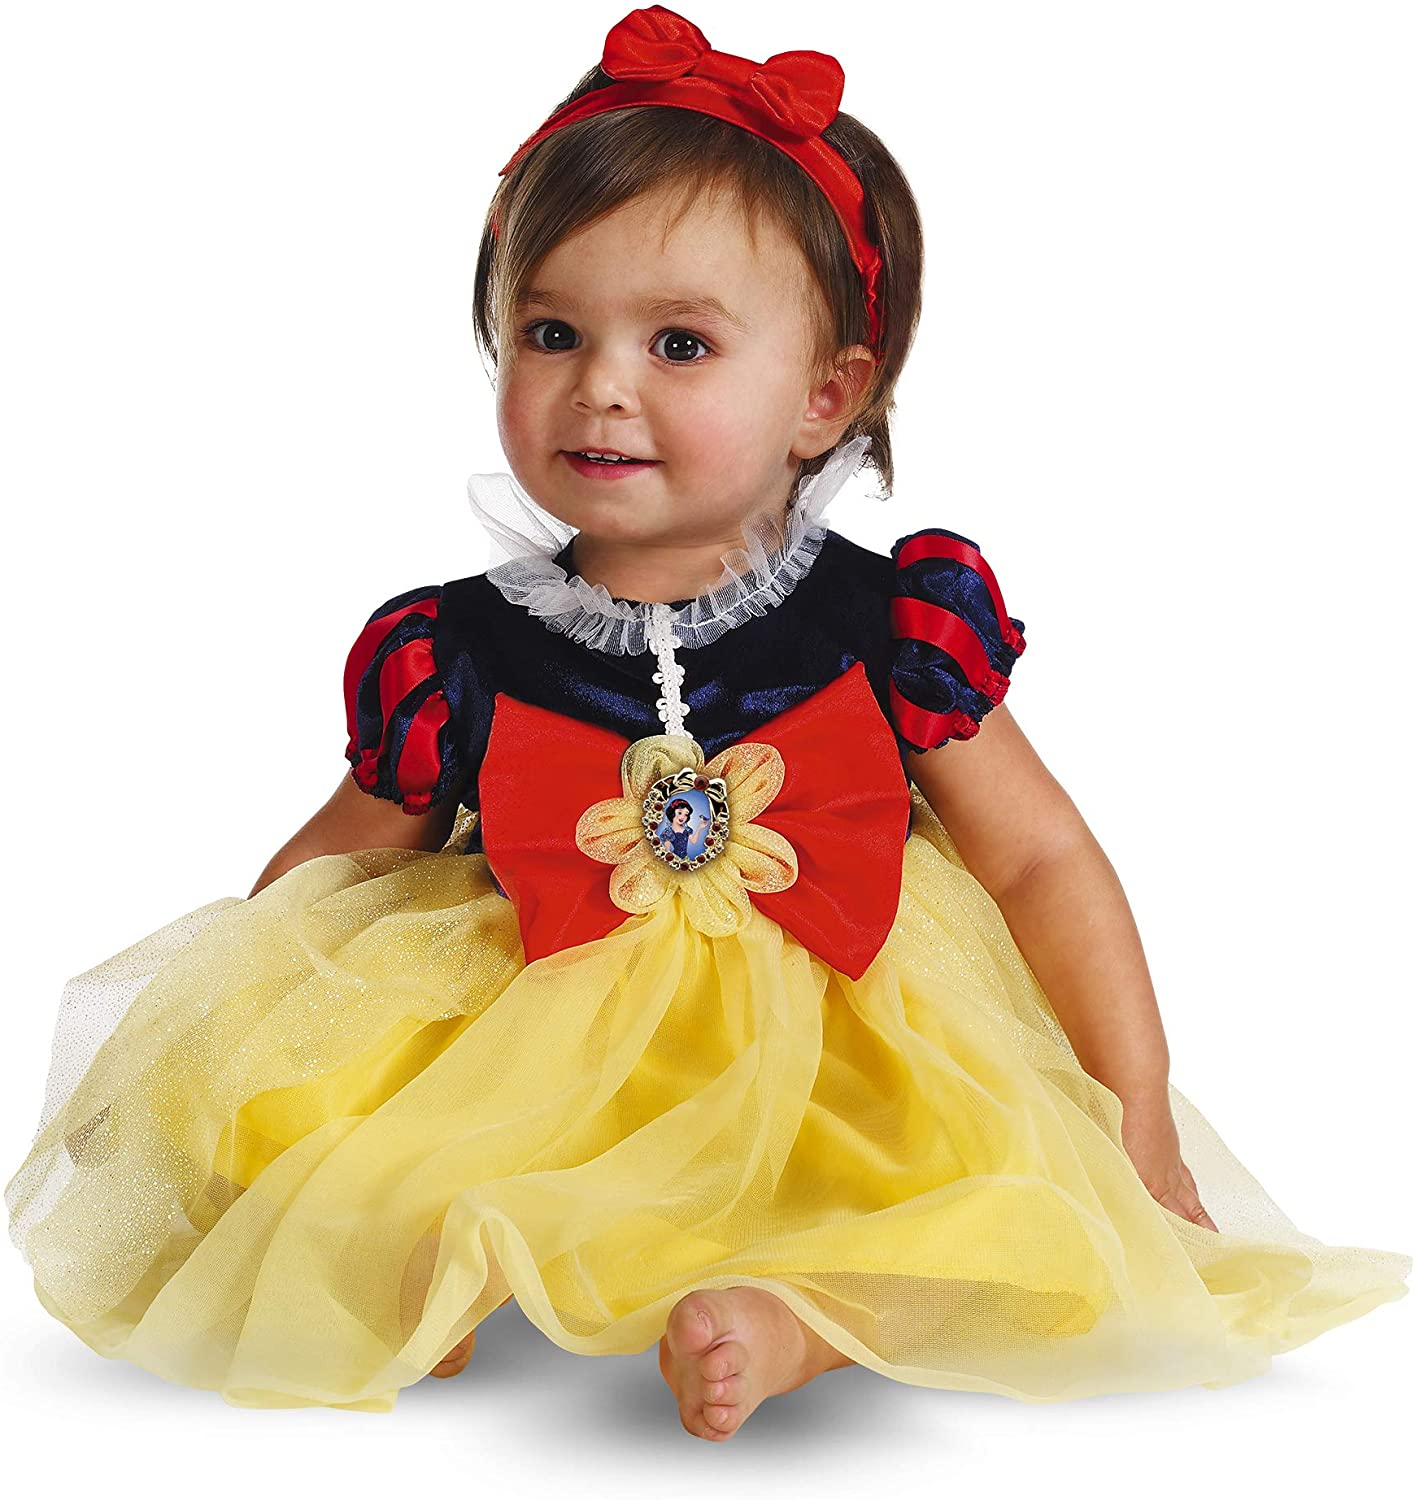 Disguise My First Sale Special Price Disney Snow White Yellow Red Blue Costume Quantity limited 12